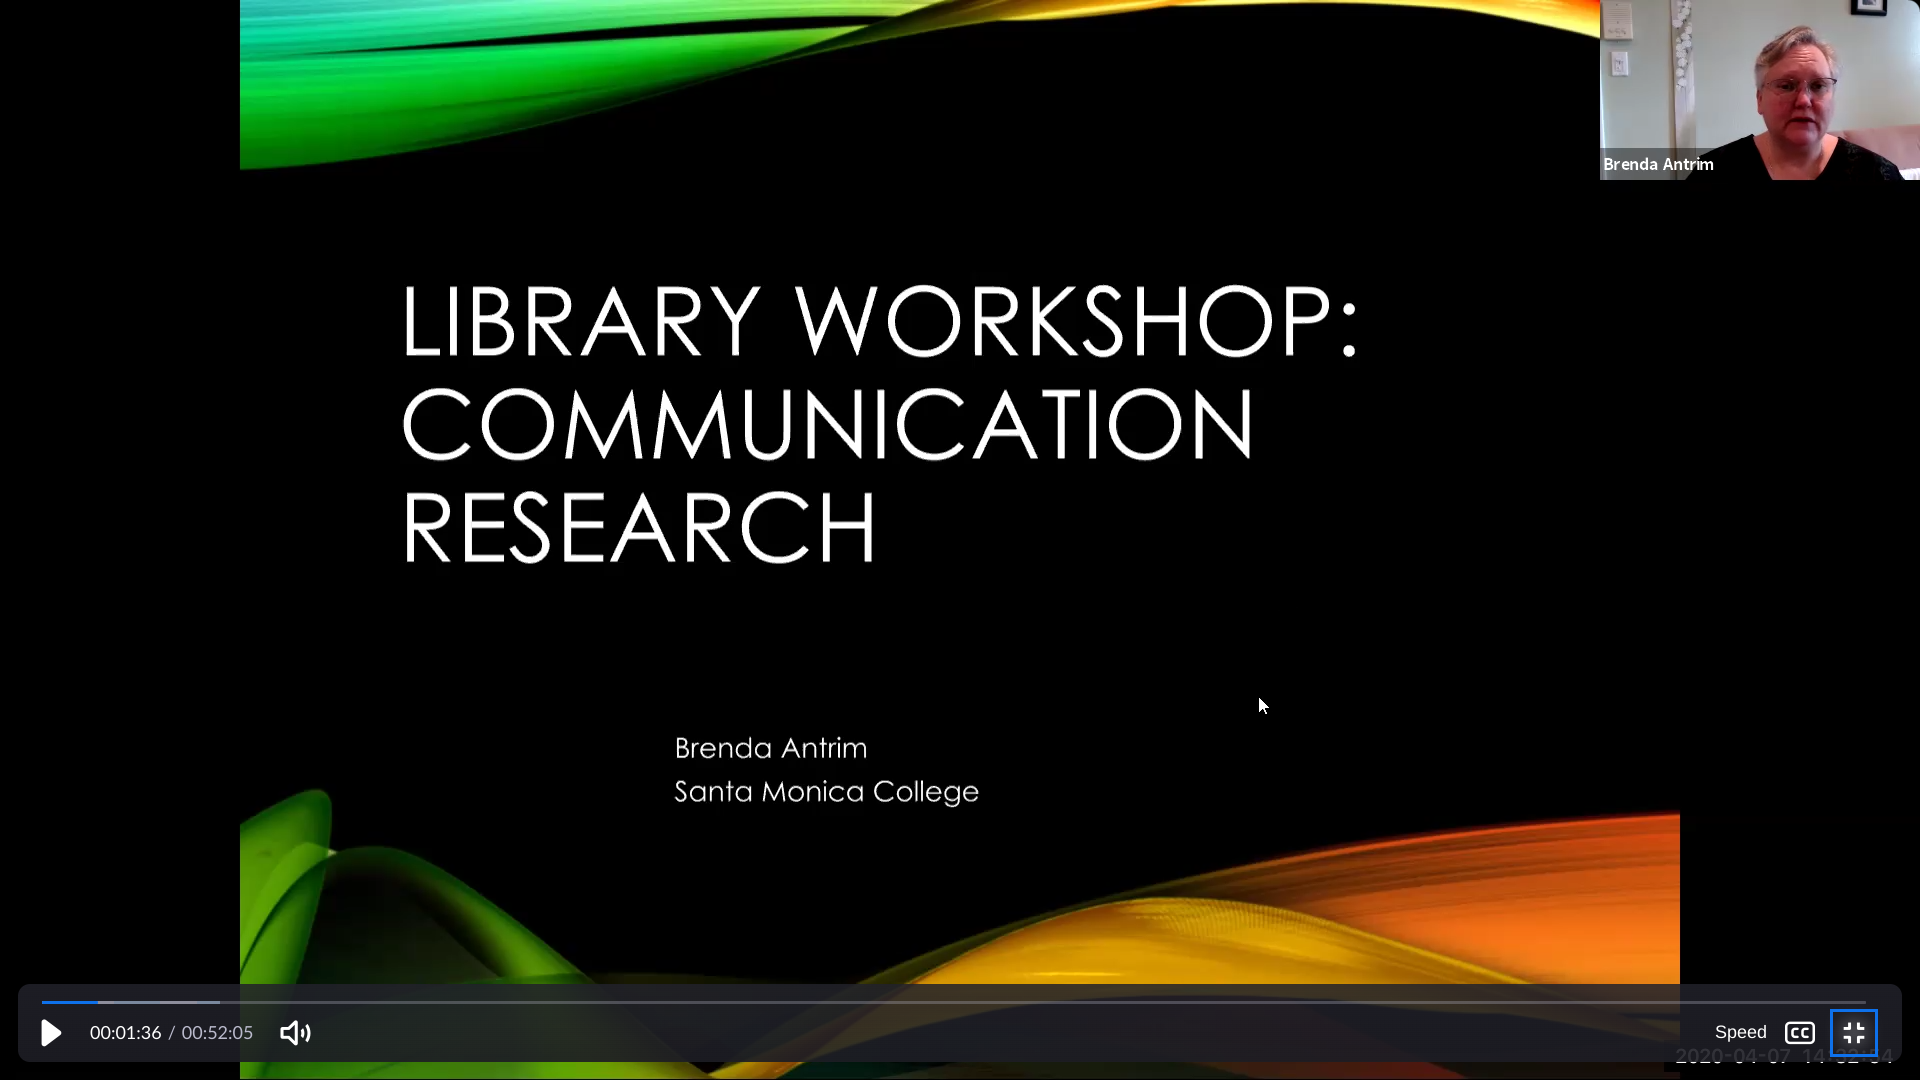 Communication Research Workshop